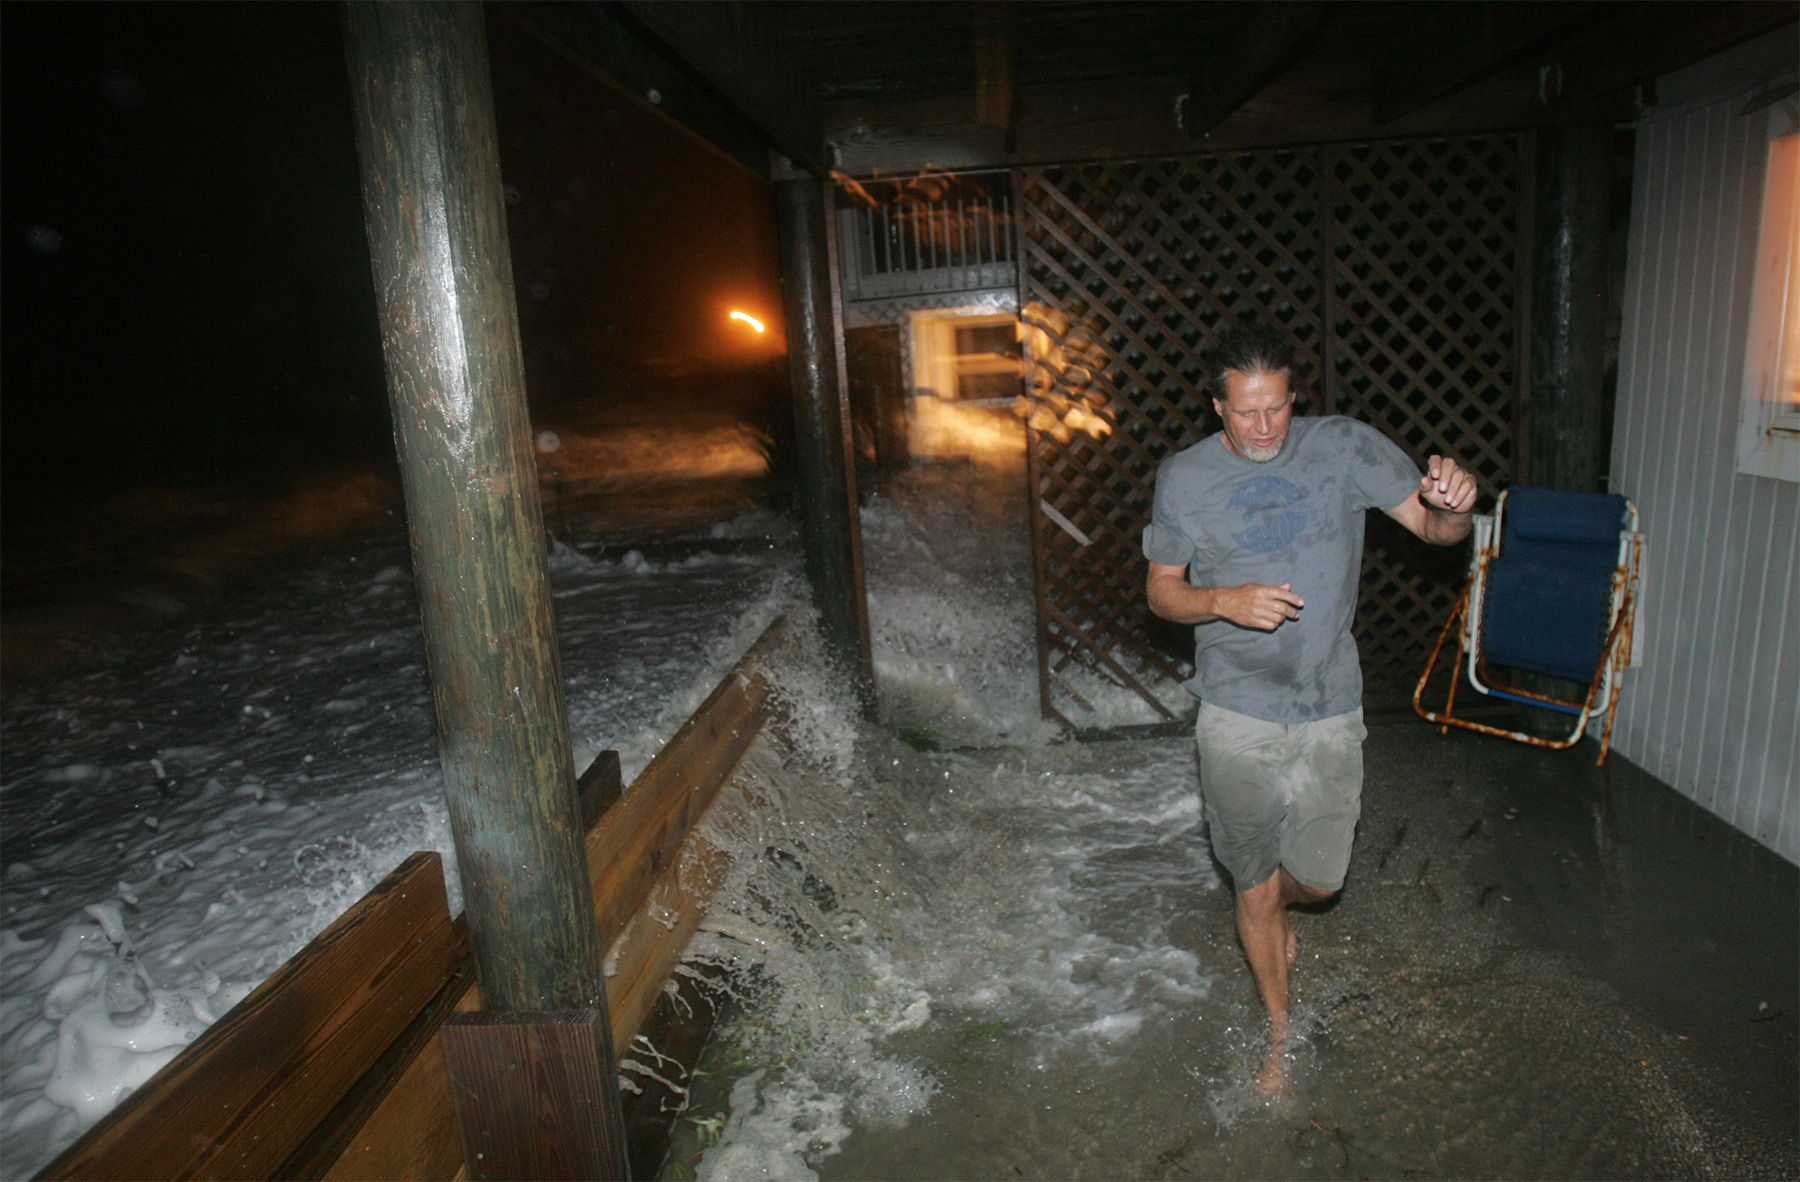 Gordon Roberts of Ocean Isle Beach runs from a storm surge at his home on East Third Street on September 5, 2008, during the effects of tropical storm Hanna in Ocean Isle Beach. Because of ongoing beach erosion problems, many east end residents fear tropical storm Hanna could cause severe damage to area homes if it hits at high tide.